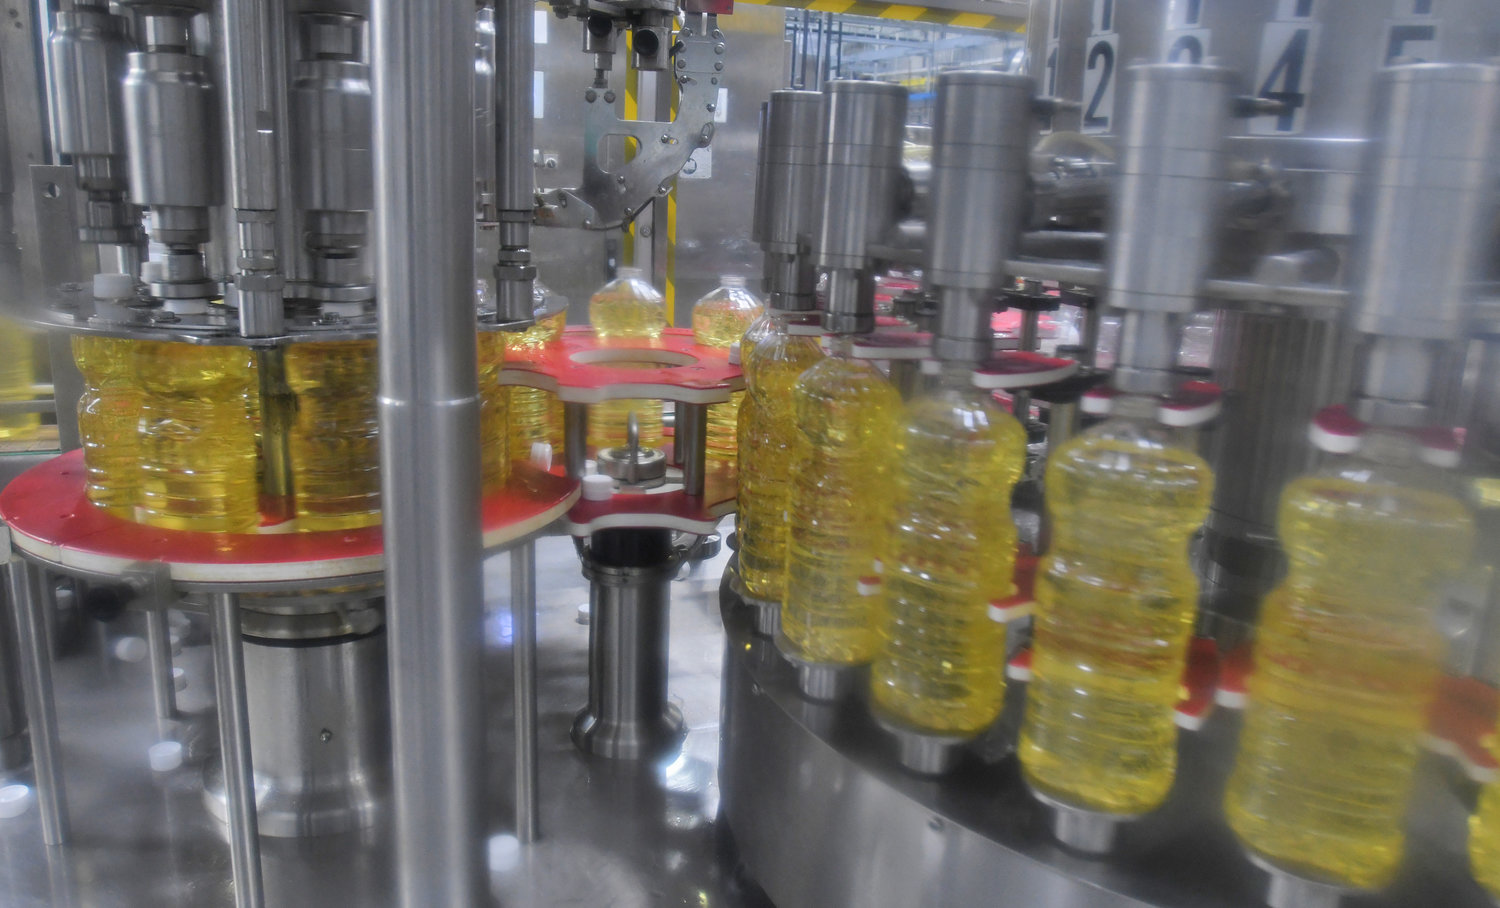 FILL THEM UP — Bottles are filled with oil at Sovena USA's plant at Griffiss park. It ships olive oil and various related products.